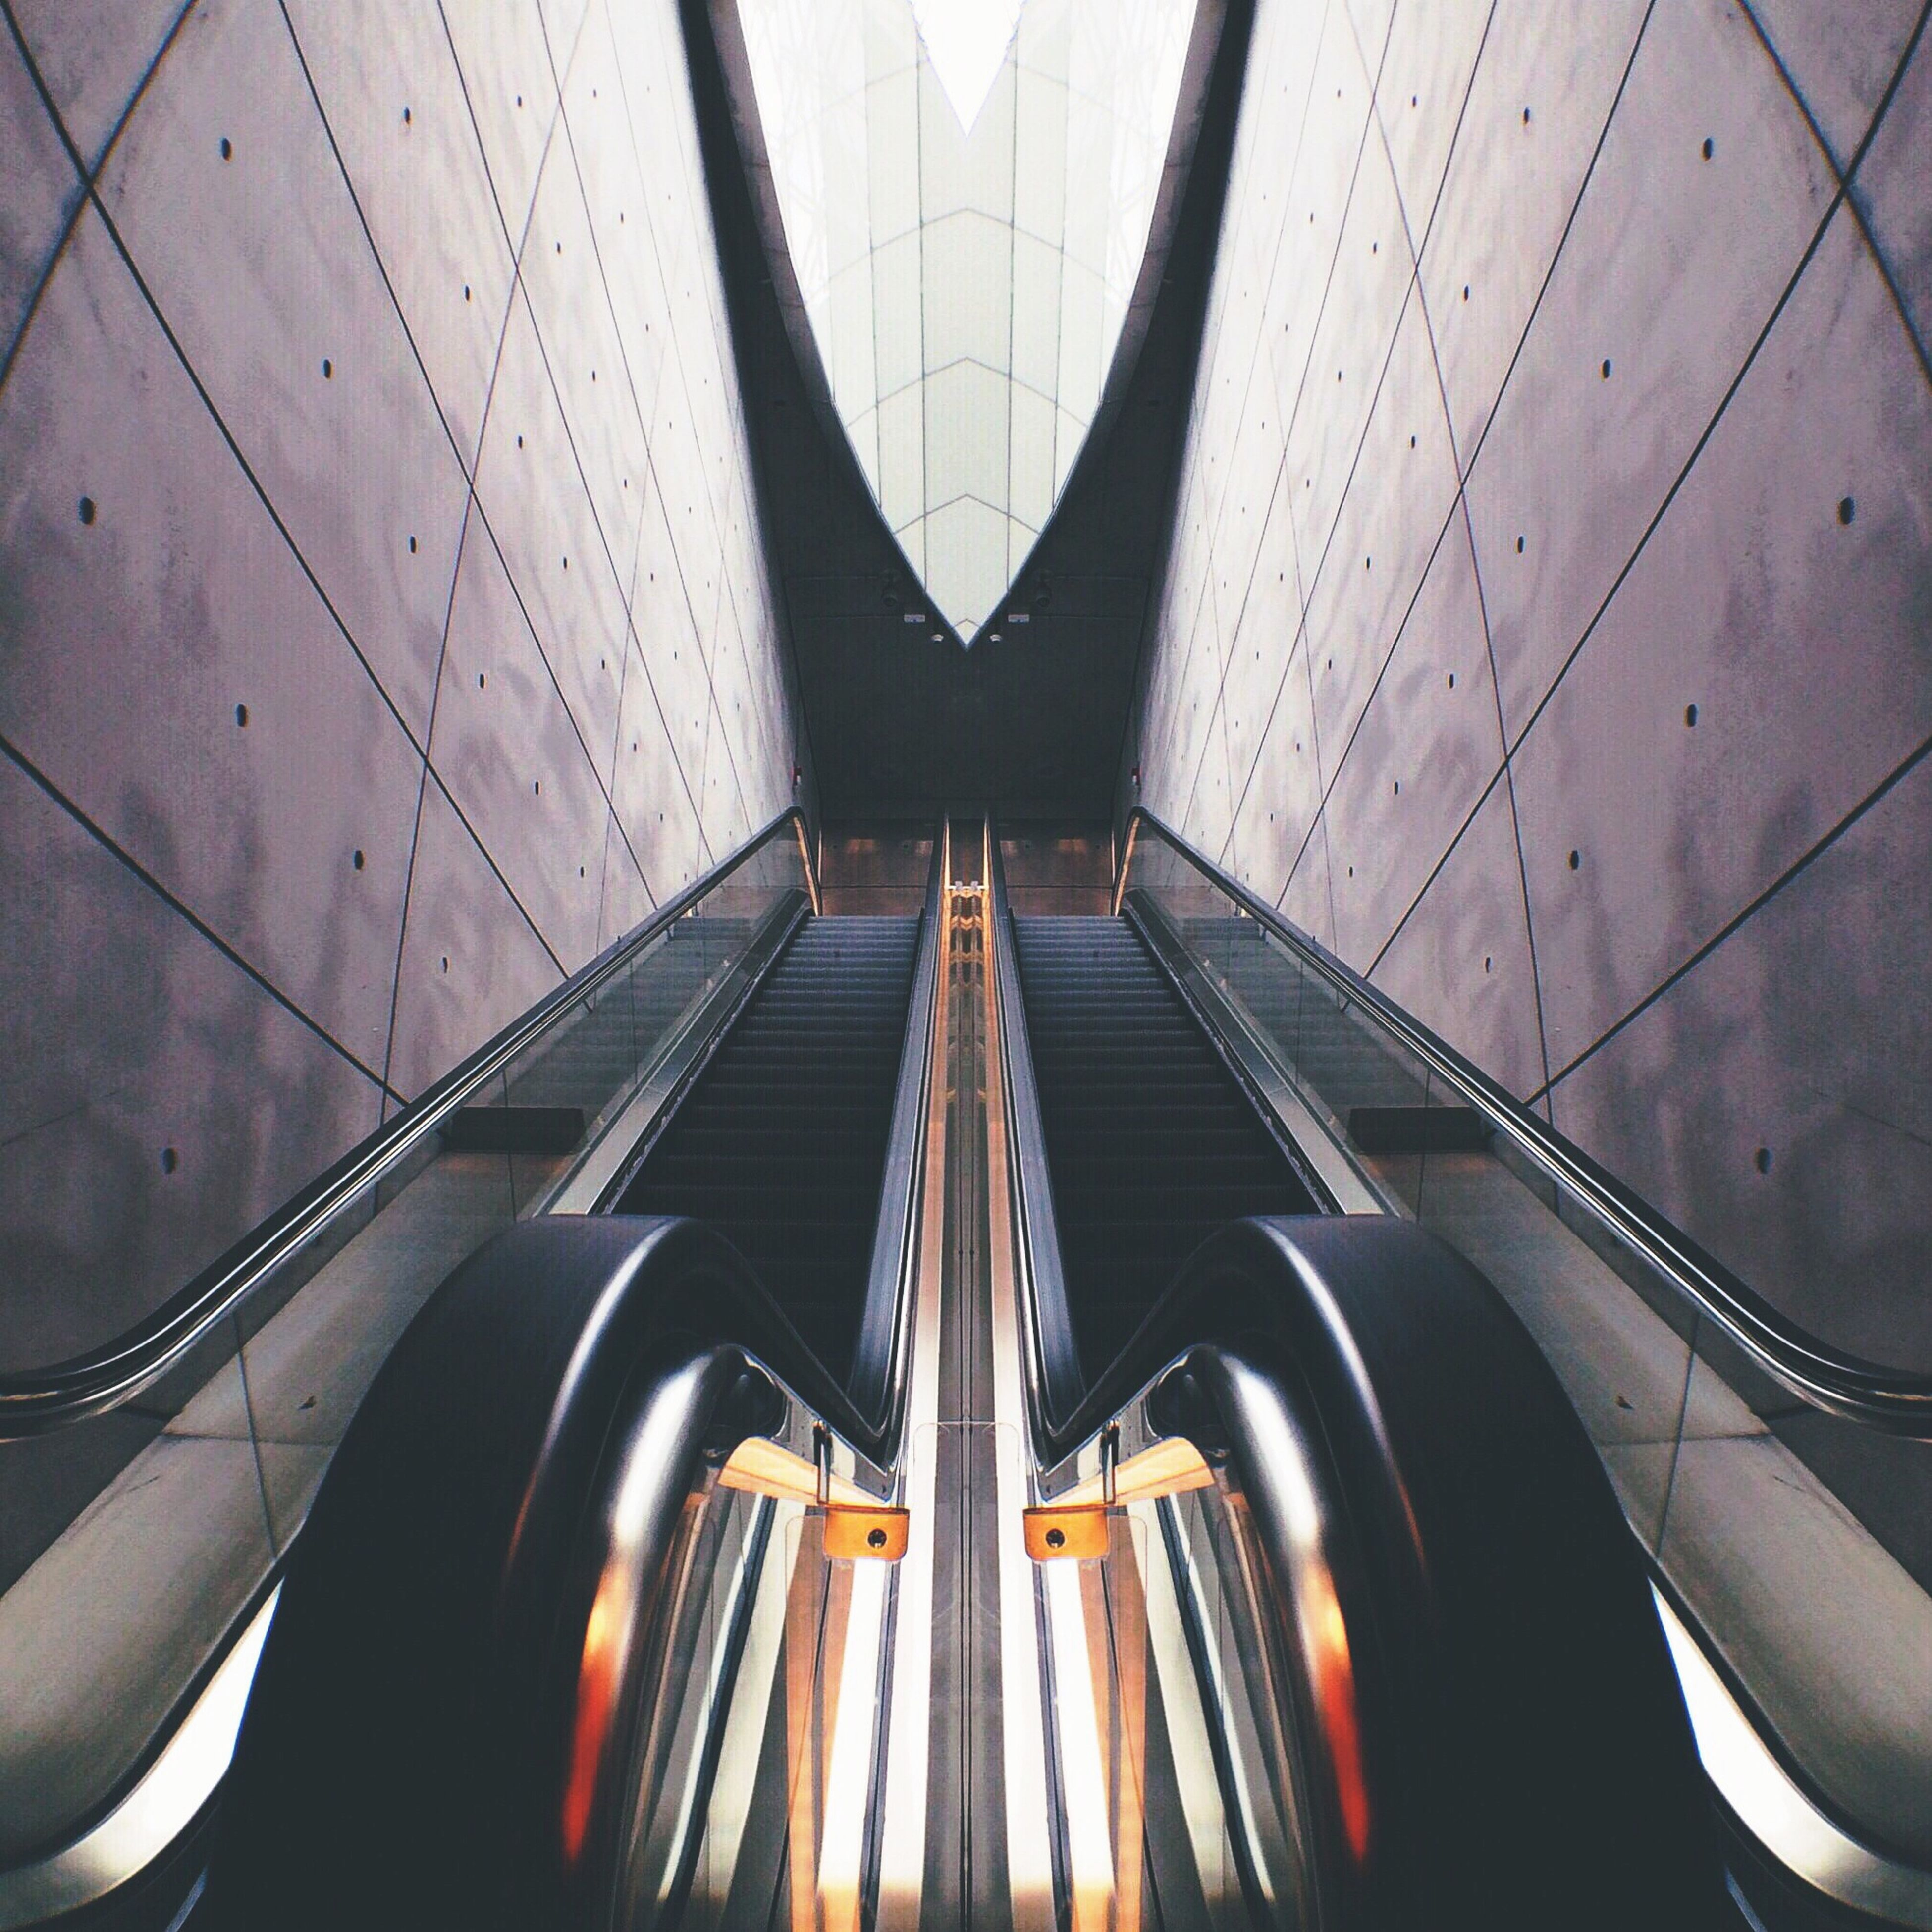 transportation, indoors, mode of transport, diminishing perspective, architecture, the way forward, built structure, land vehicle, modern, vanishing point, car, low angle view, no people, pattern, vehicle interior, travel, part of, escalator, glass - material, day